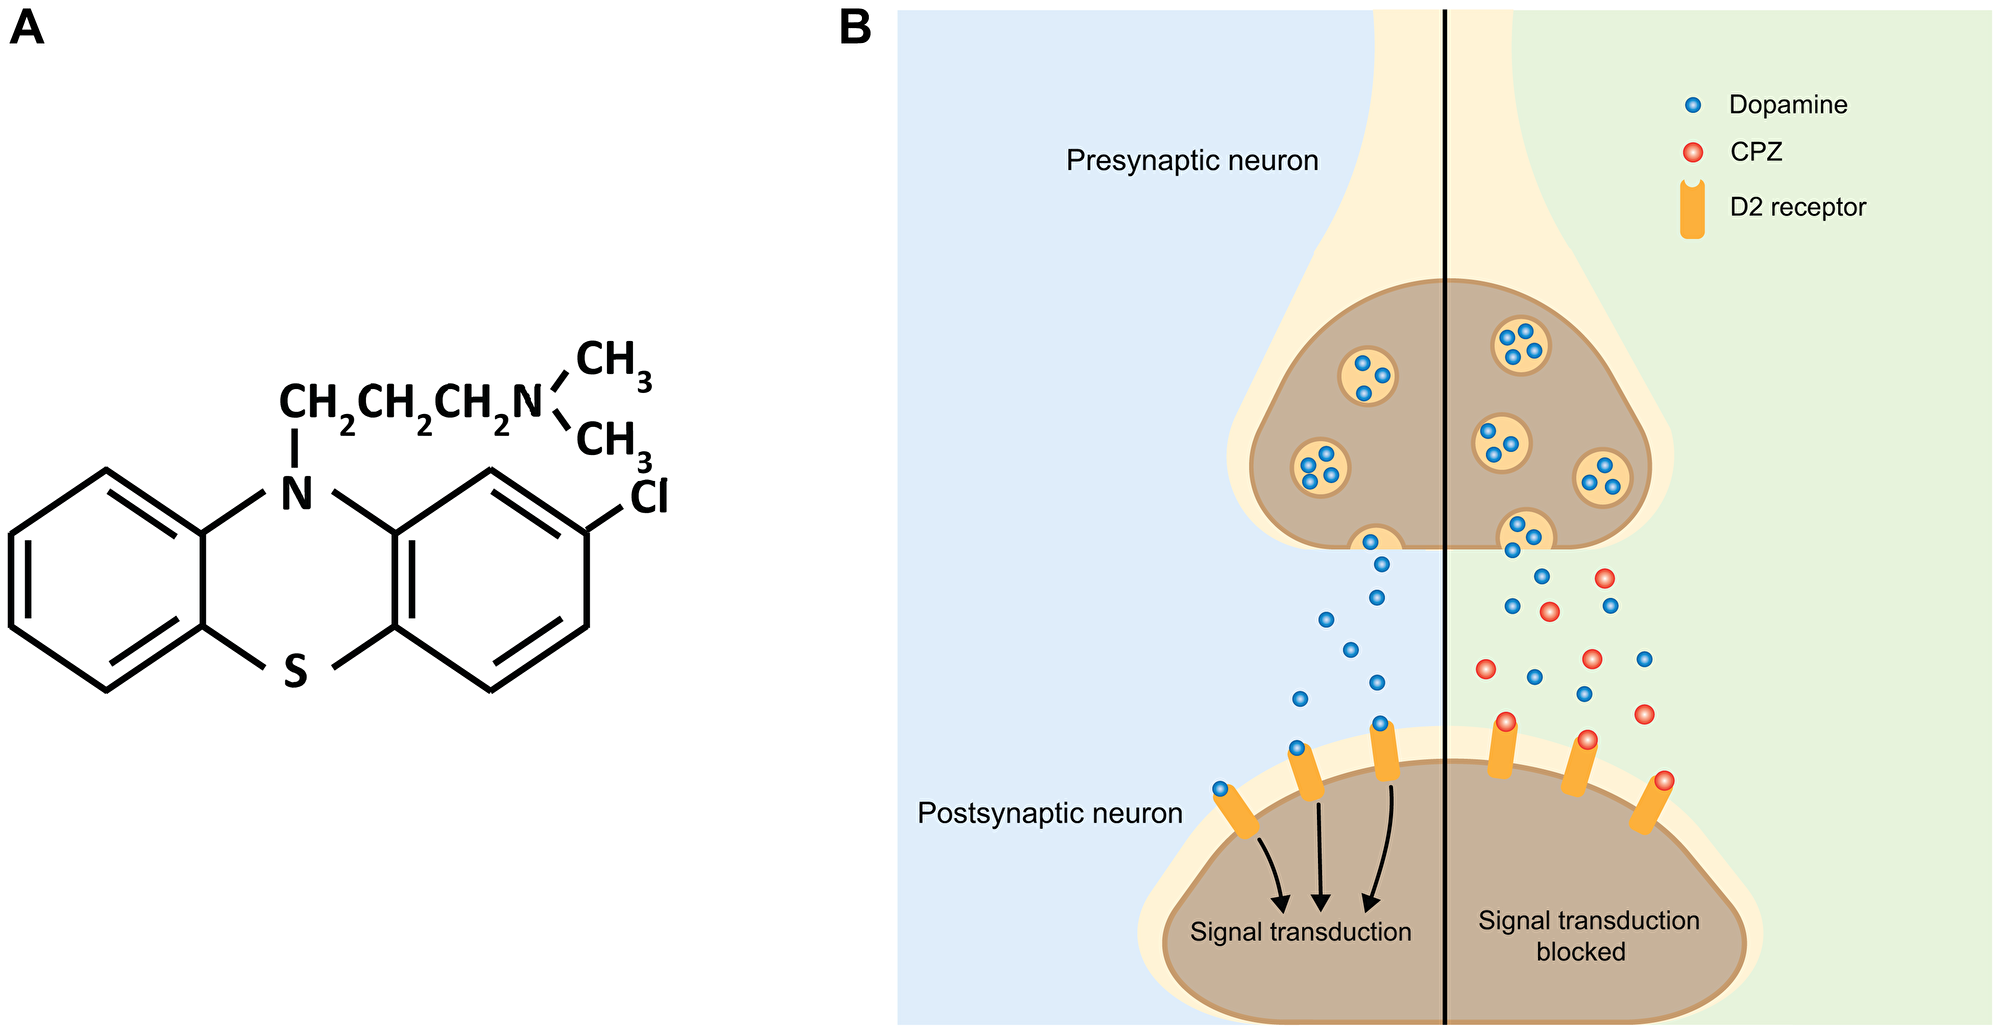 Schematic of the effect of CPZ on dopaminergic neurotransmission.